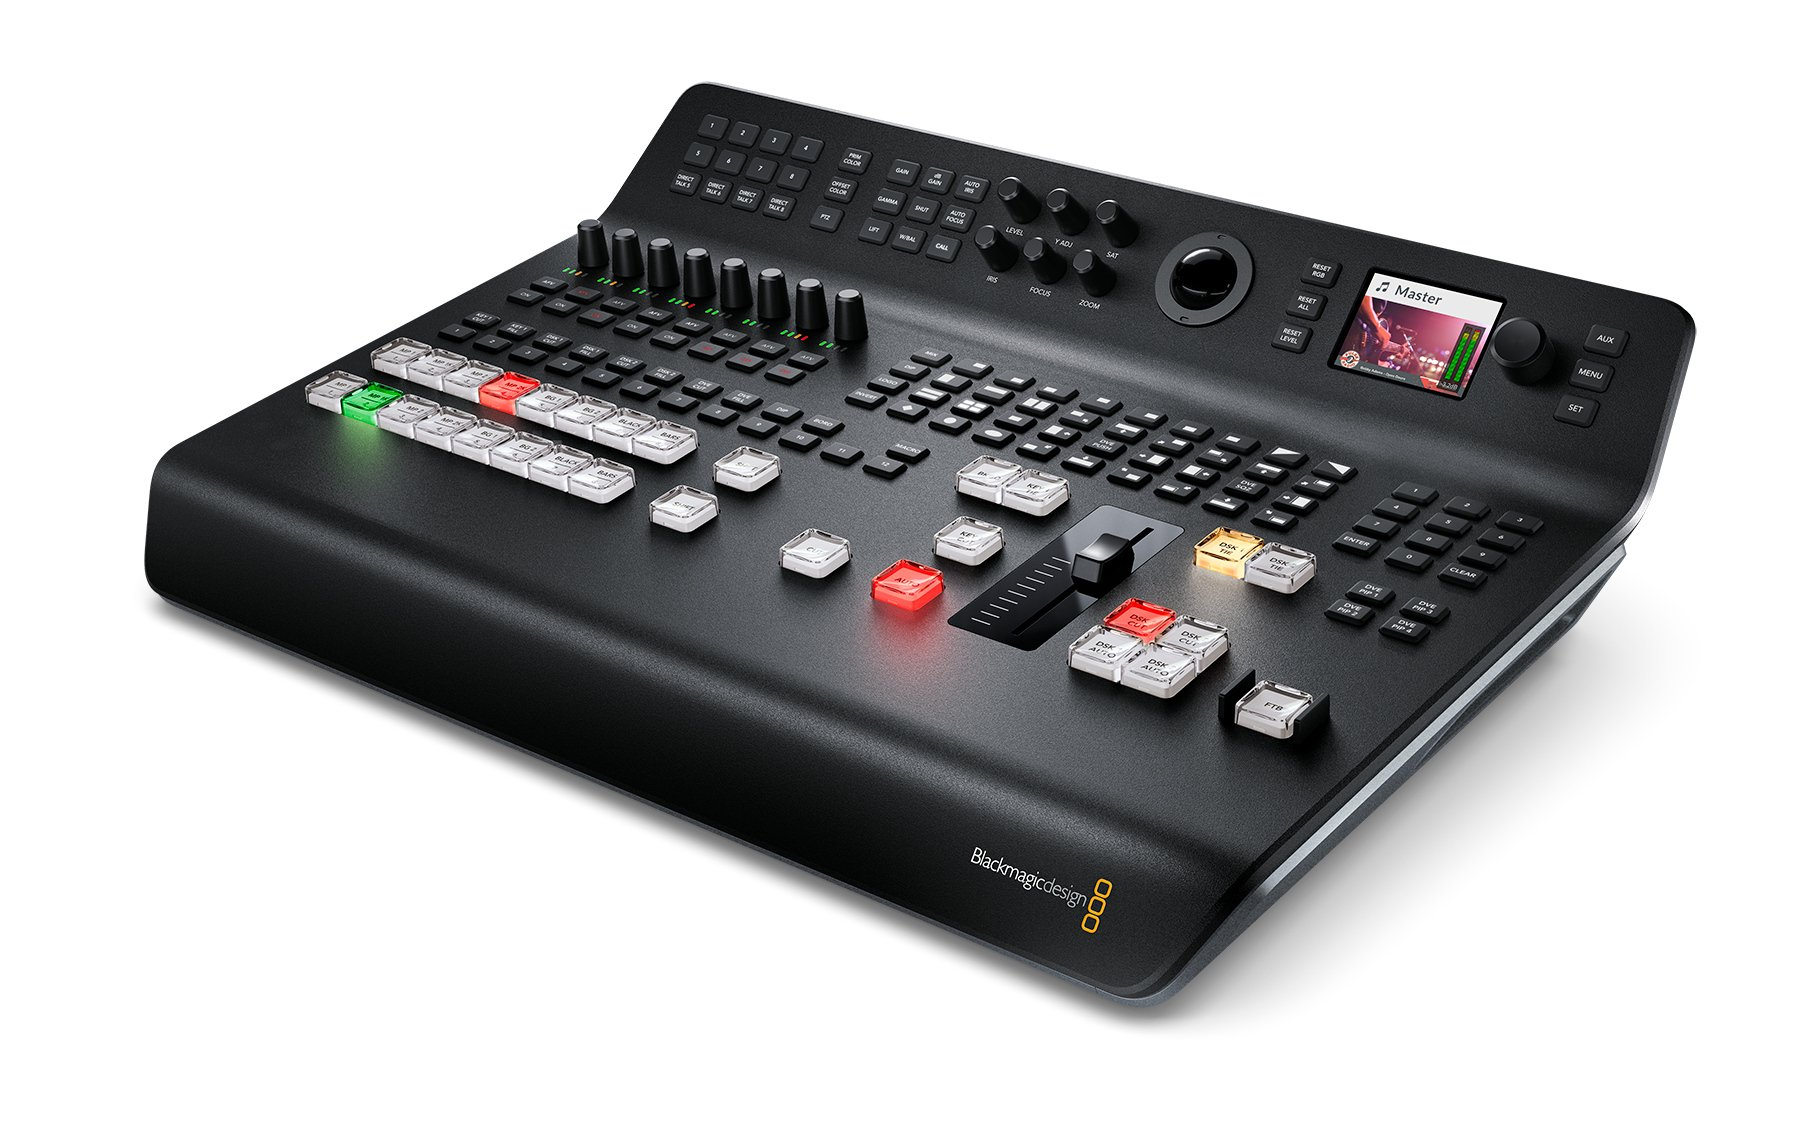 Blackmagic Design Swatemtvstu Pro4k Ultra Hd Live Production Switcher With 8 Standards Converted Full Compass Systems